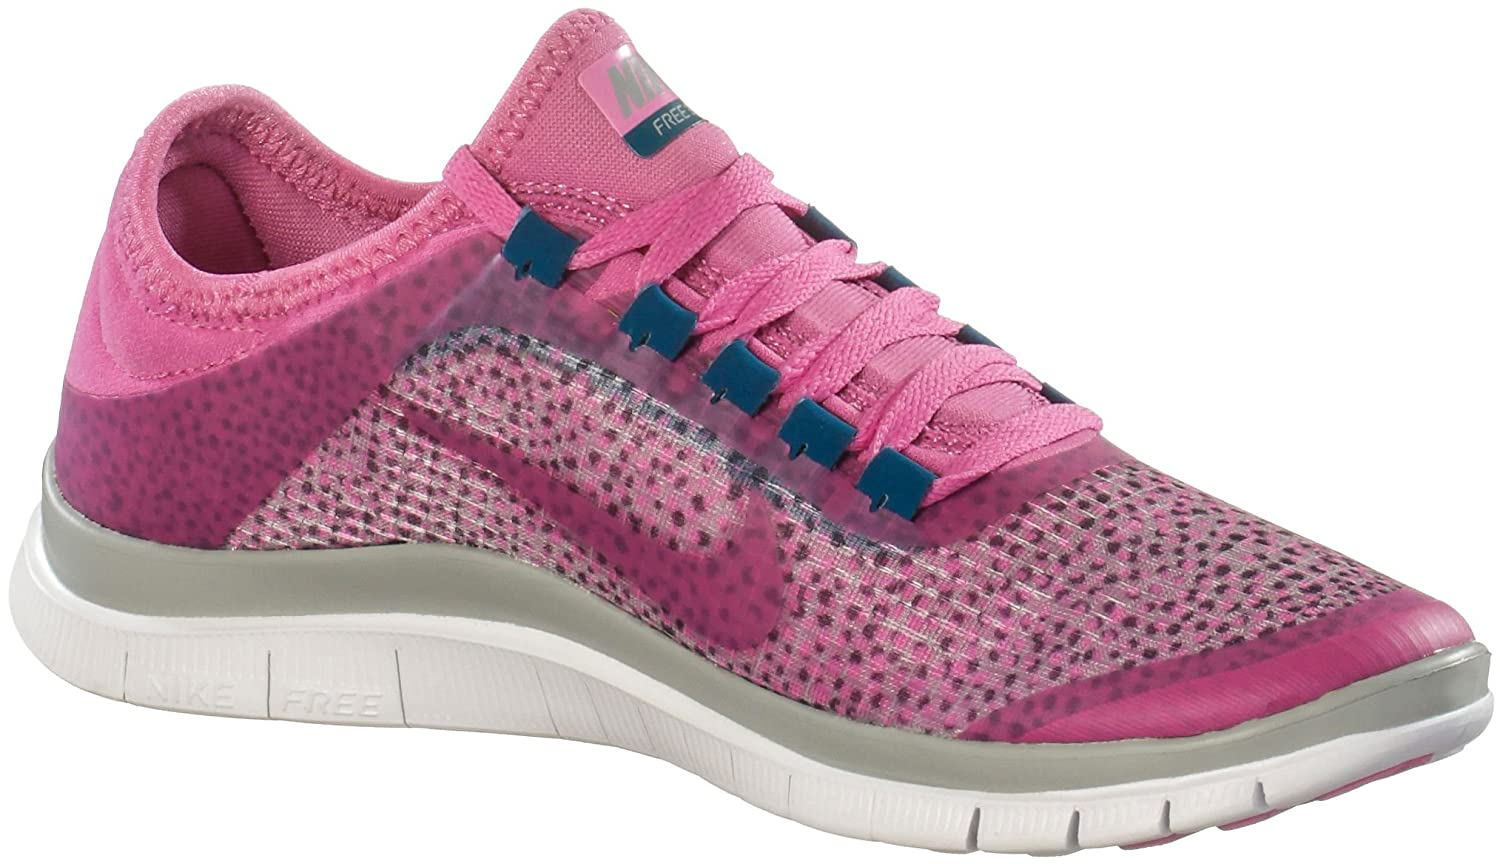 ddeb70d13611 Nike womens free 3.0 V EXT running trainers 579828 006 sneakers shoes  barefoot ride (uk 7 us 9.5 eu 41)  Amazon.co.uk  Shoes   Bags